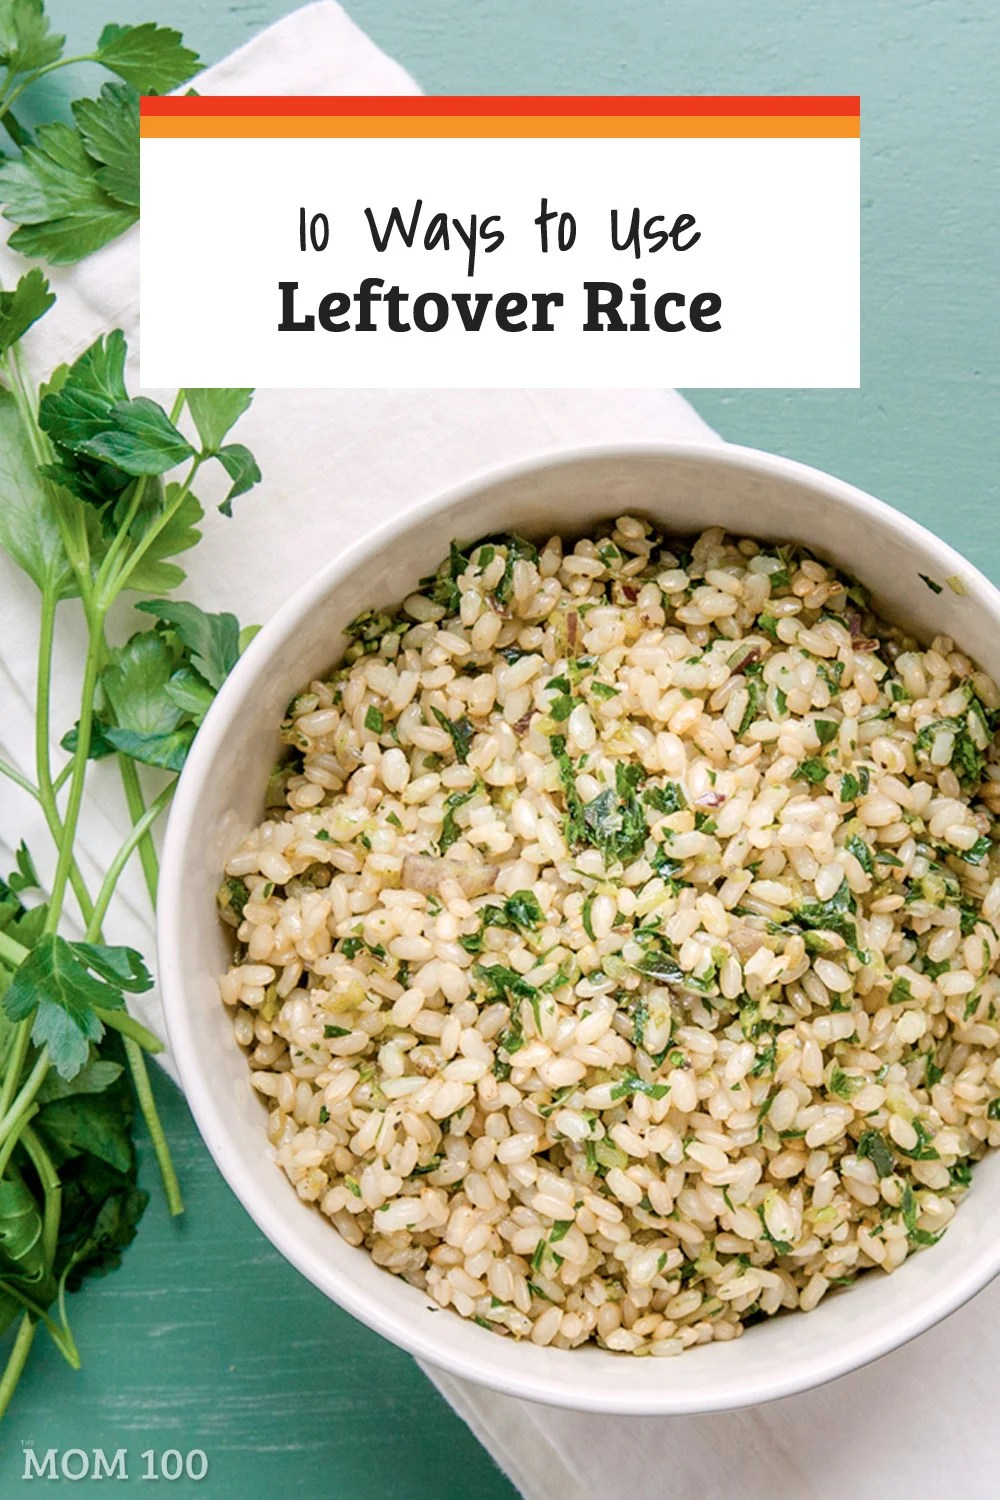 10 Ways to Use Leftover Rice / Extra rice has so many potential uses, you'll be glad to have leftovers hanging out in the fridge. Here are 10 ways to use leftover rice. #leftovers #leftoverrice #rice